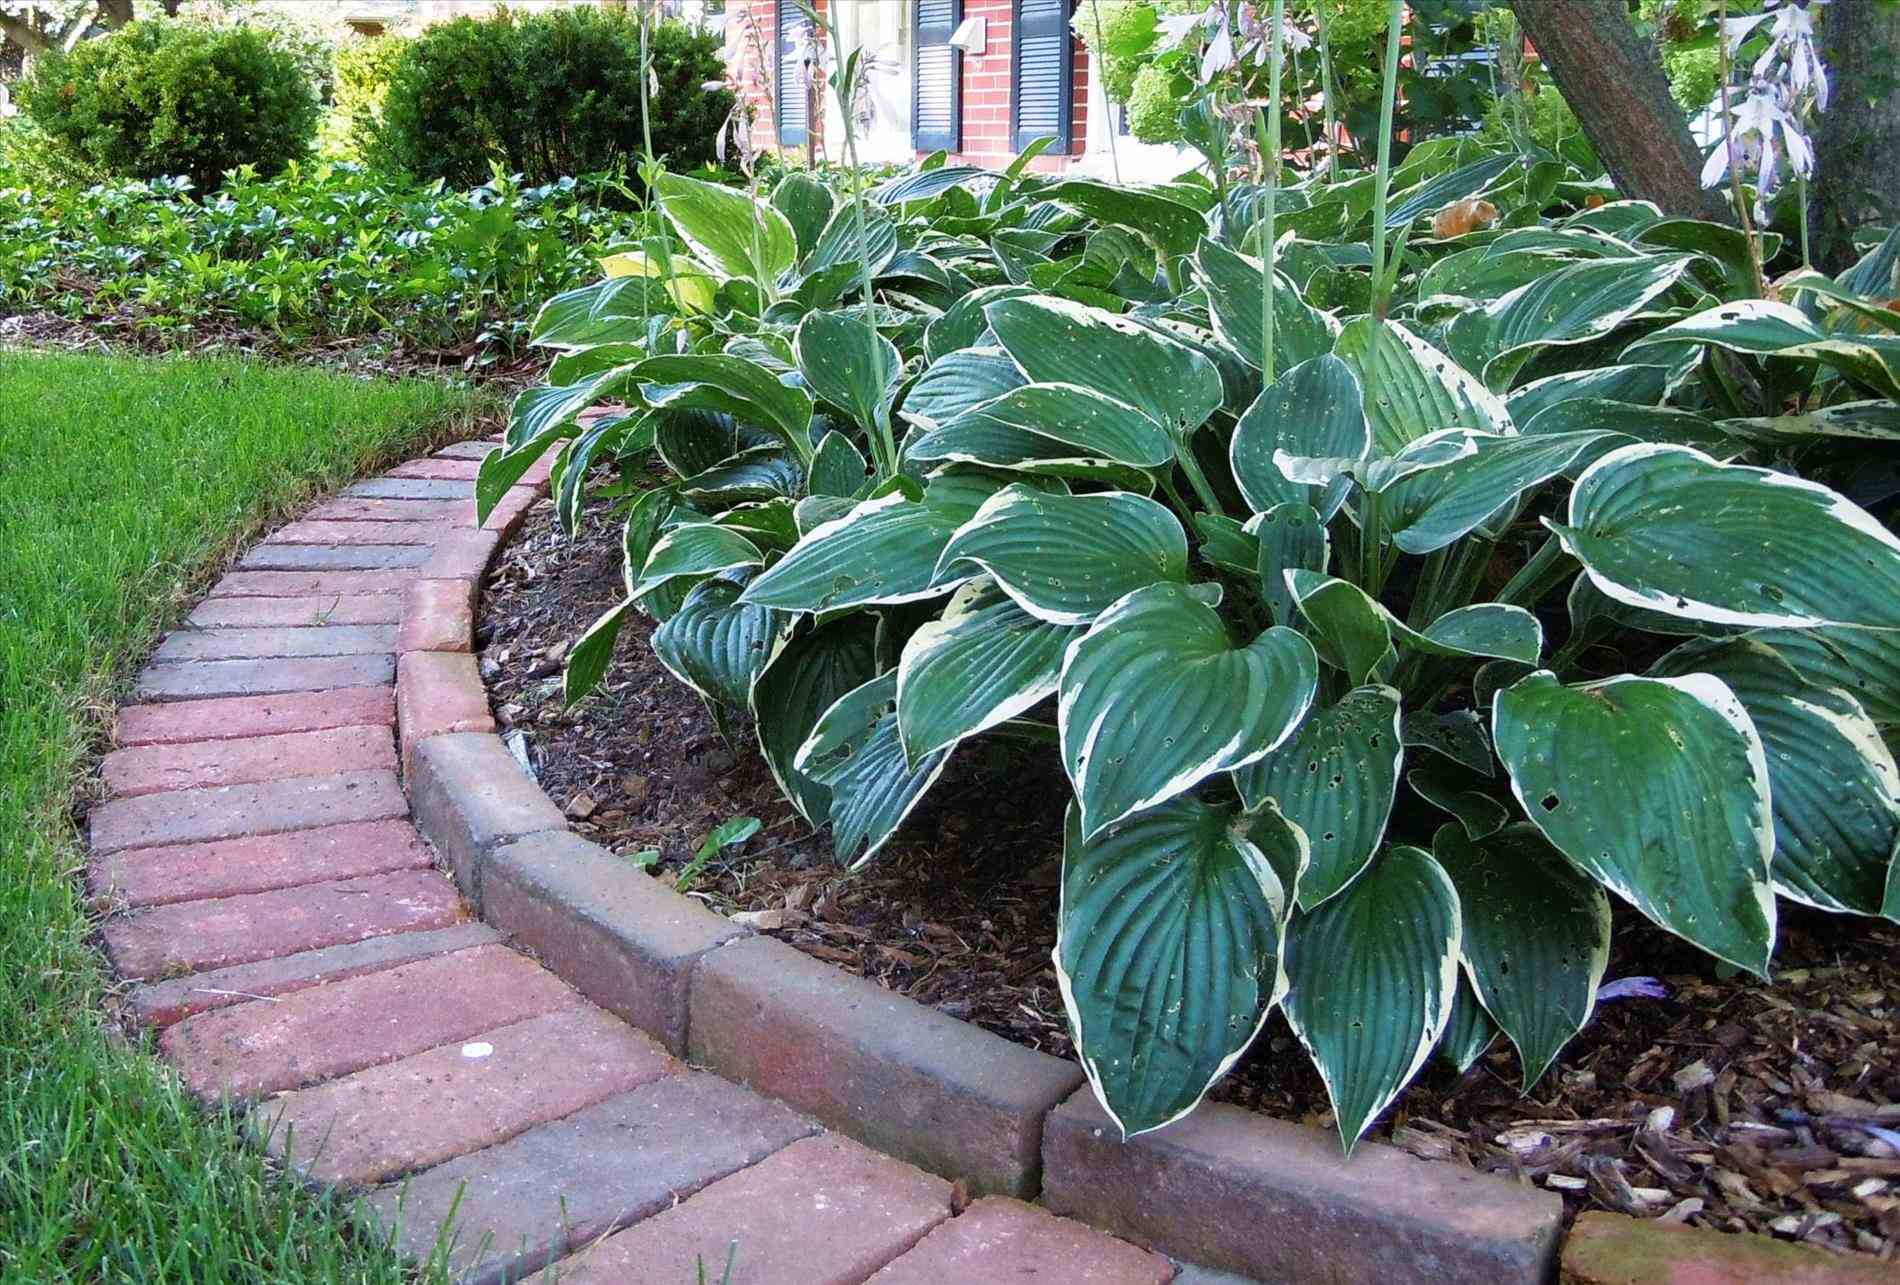 Aluminum Landscape Edging Home Depot | Colmet Edging | Home Depot Landscape Edging